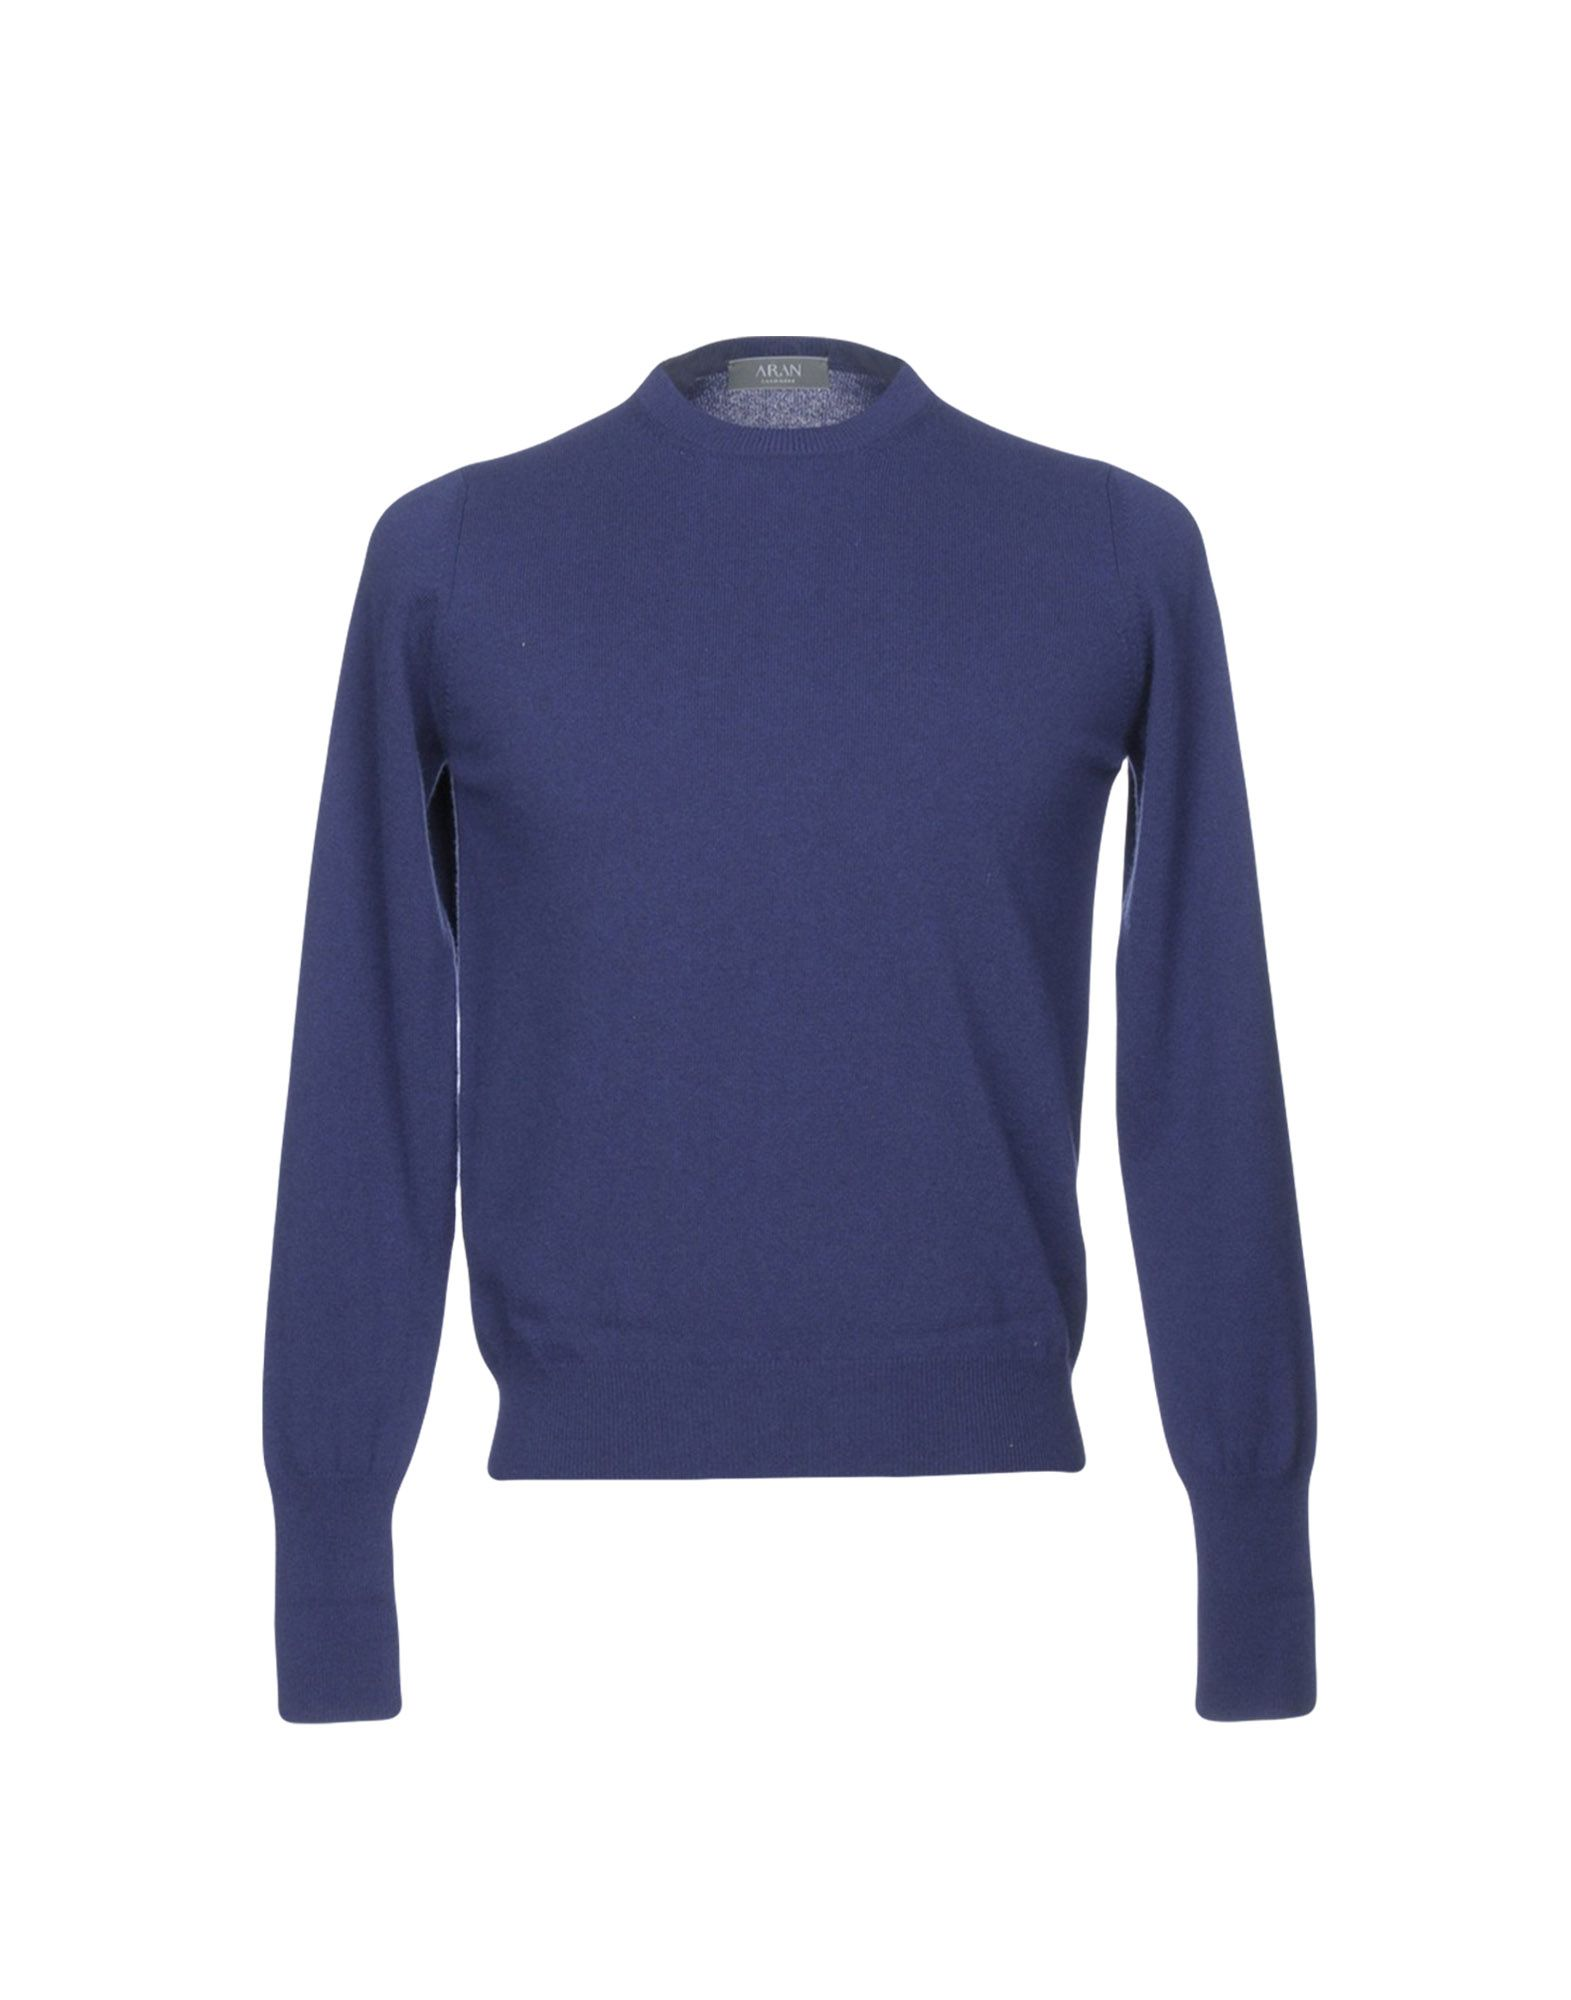 ARAN CASHMERE Sweater in Blue